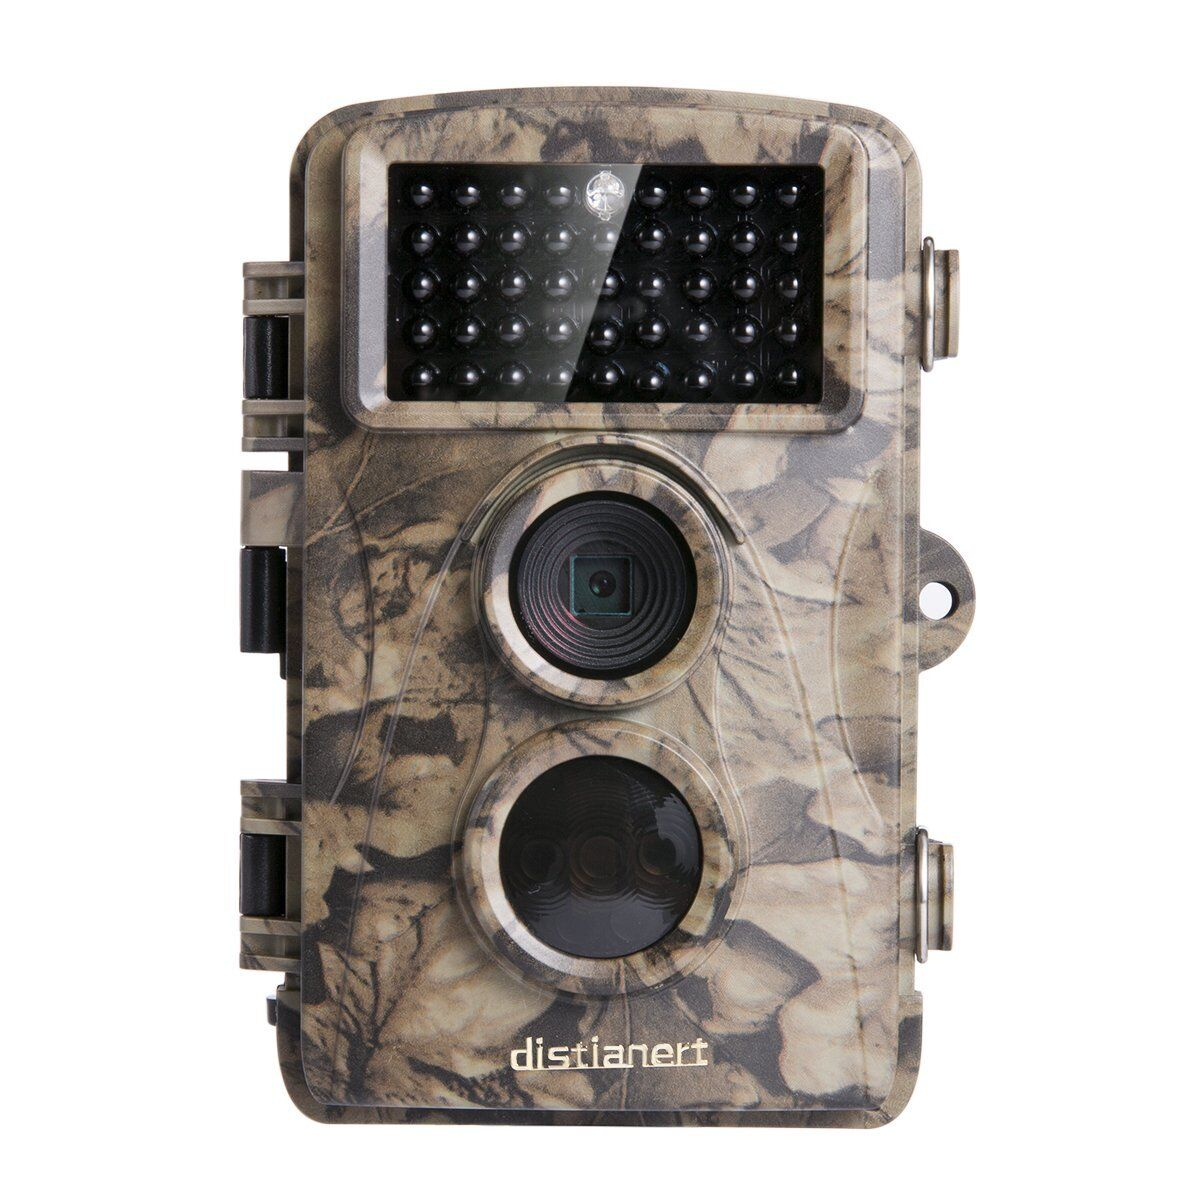 Distianert 12MP 720P Infrared Game&Trail Camera 0.6 Trigger  Time Low Glow Nig...  factory outlet store